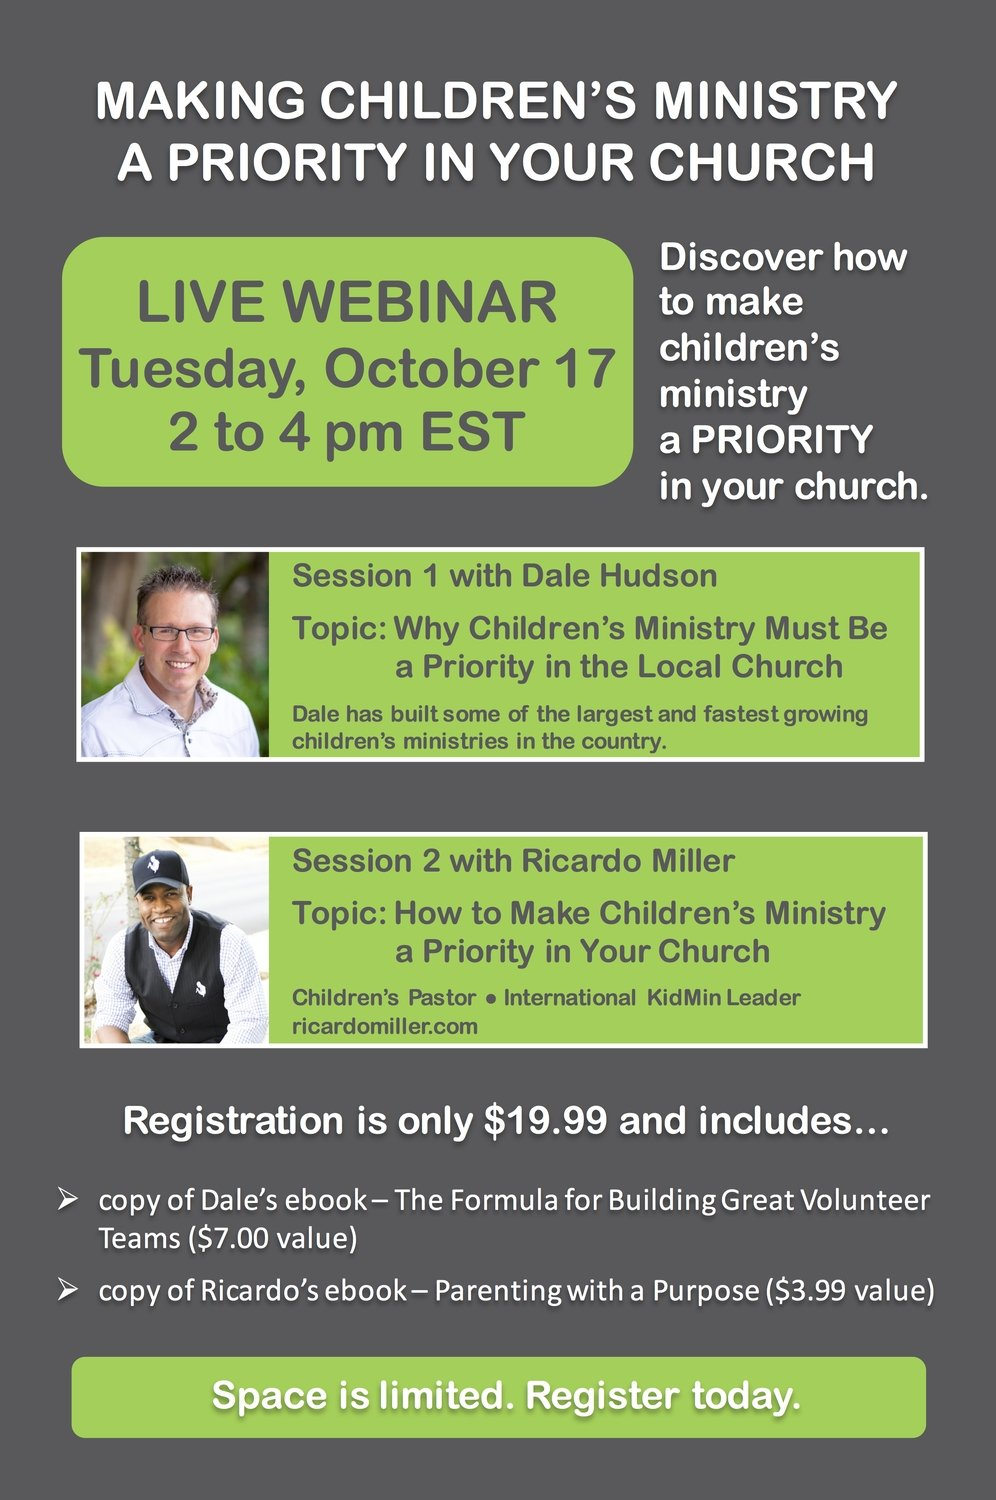 Making Children's Ministry a Priority           (Live Webinar)